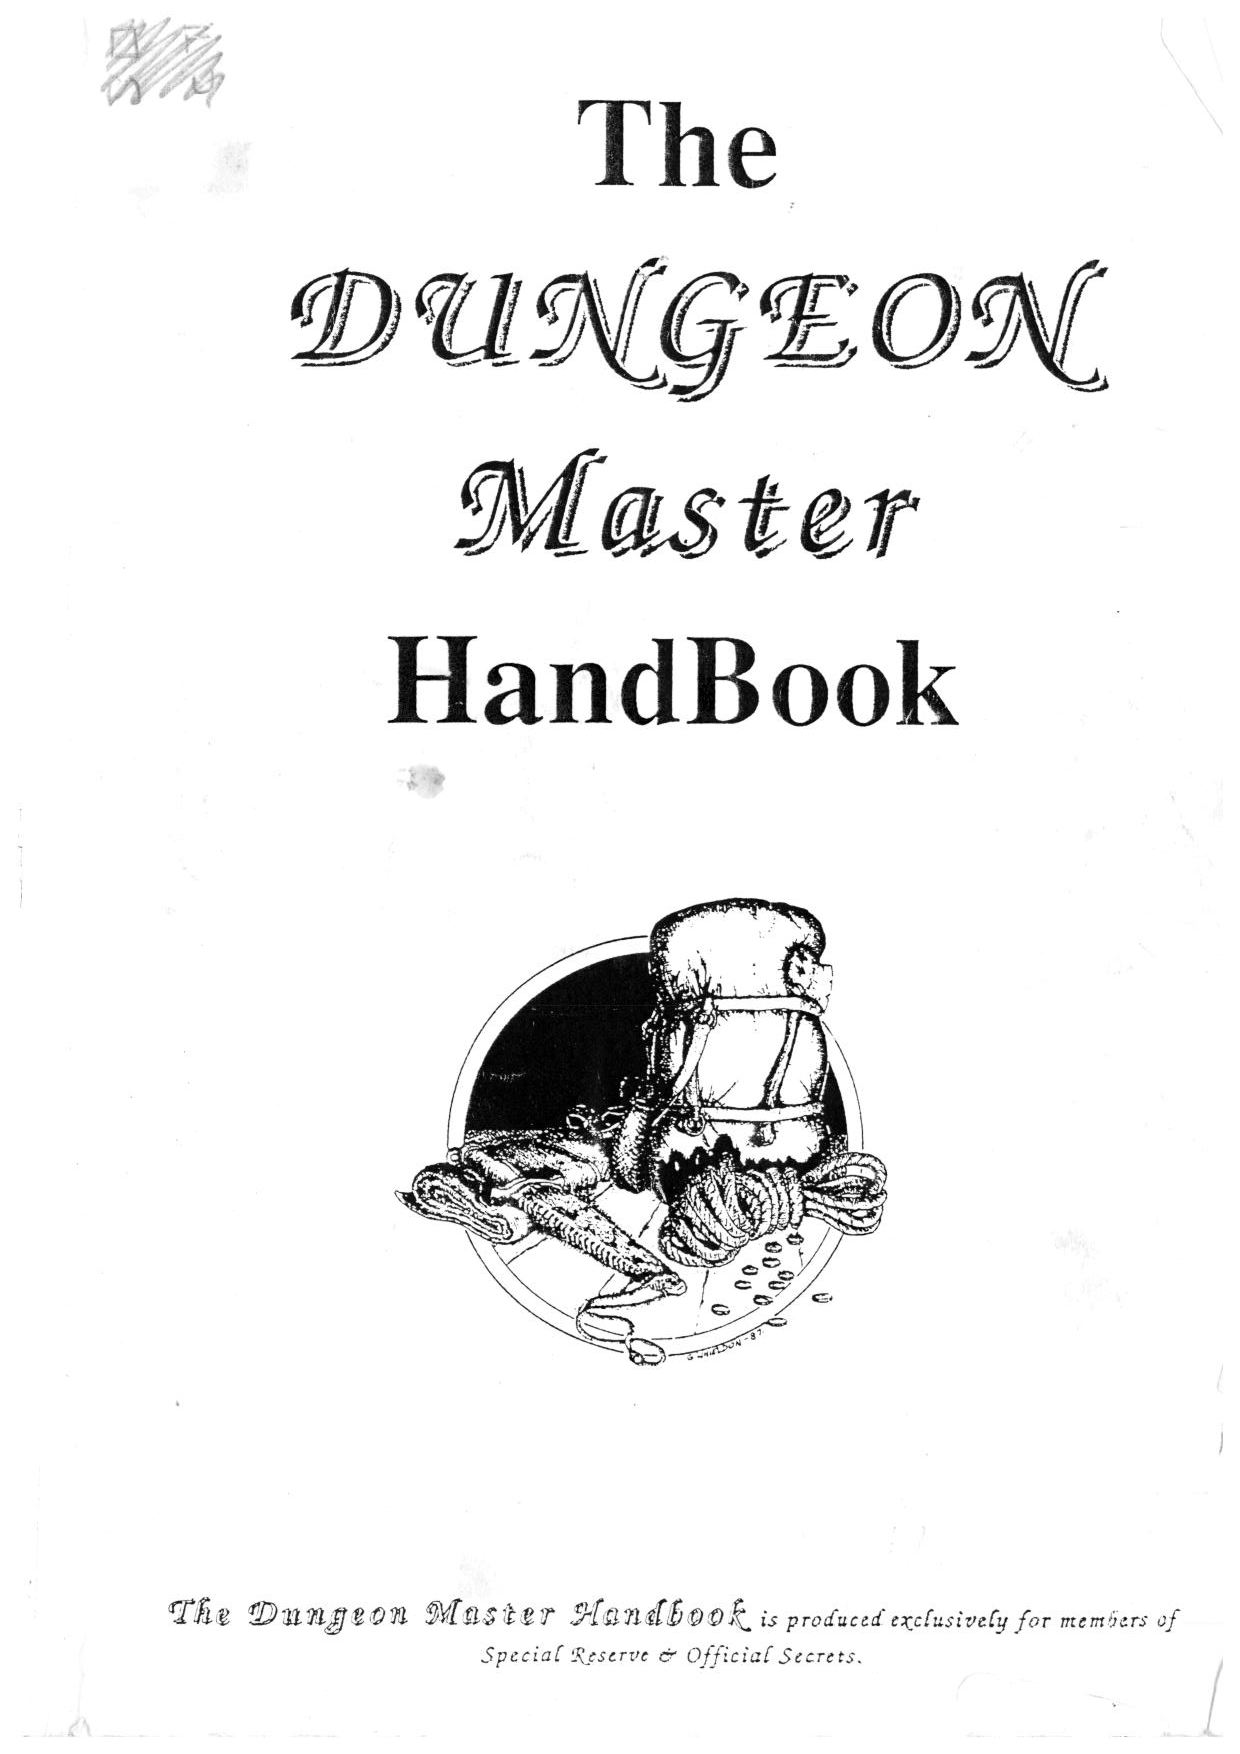 Hint Book - The Dungeon Master HandBook - UK - Page 001 - Scan